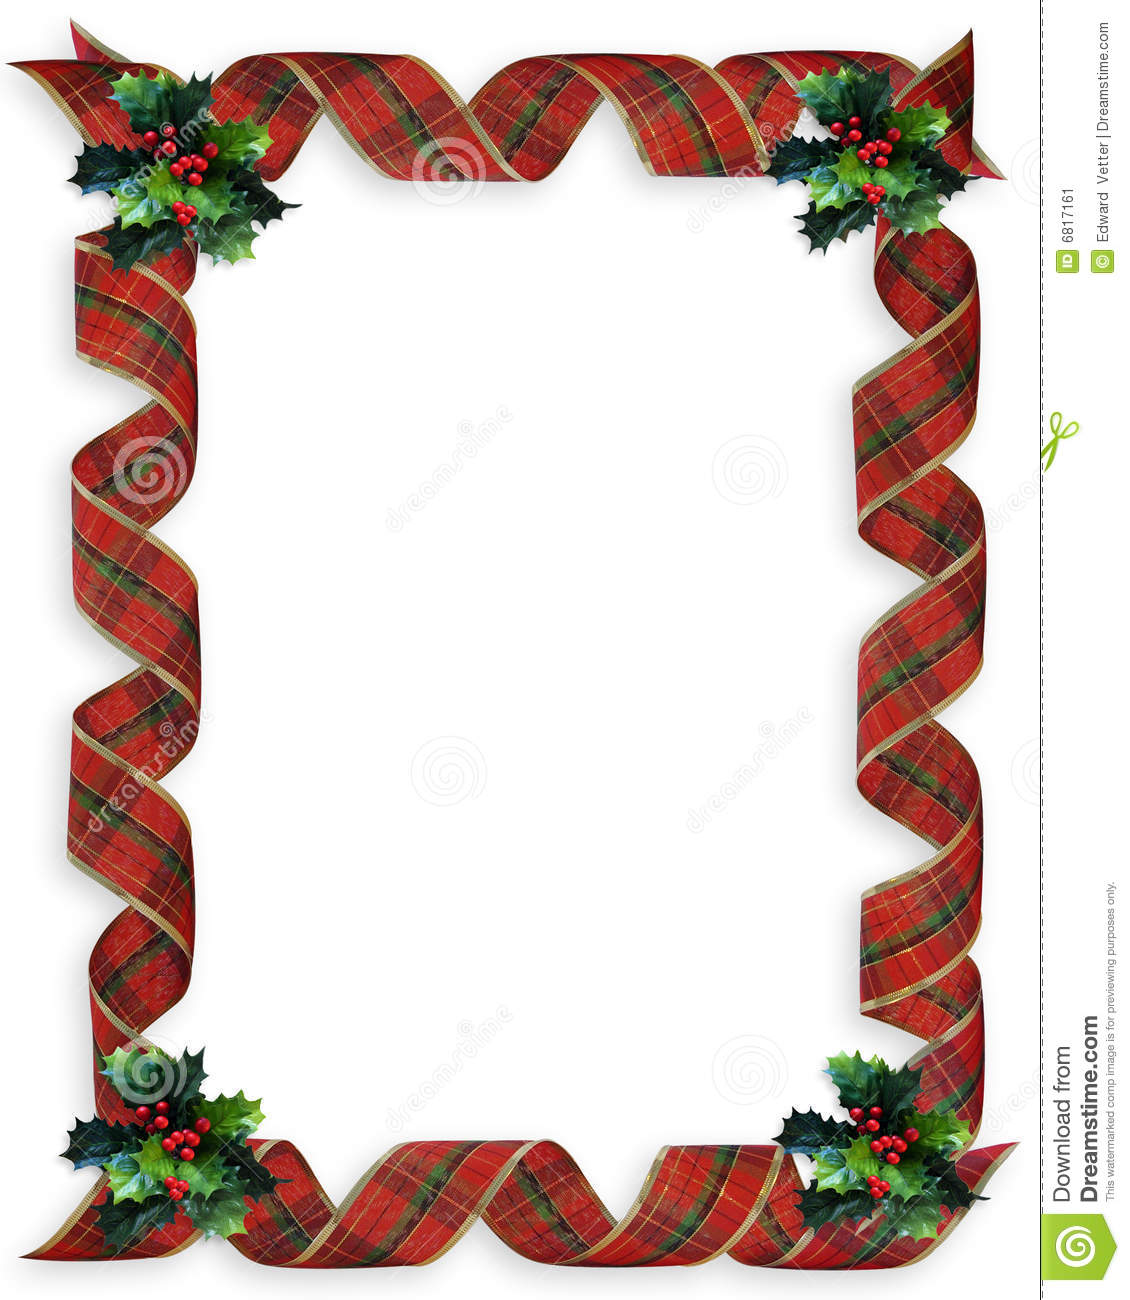 Christmas ribbons holly border frame stock illustration